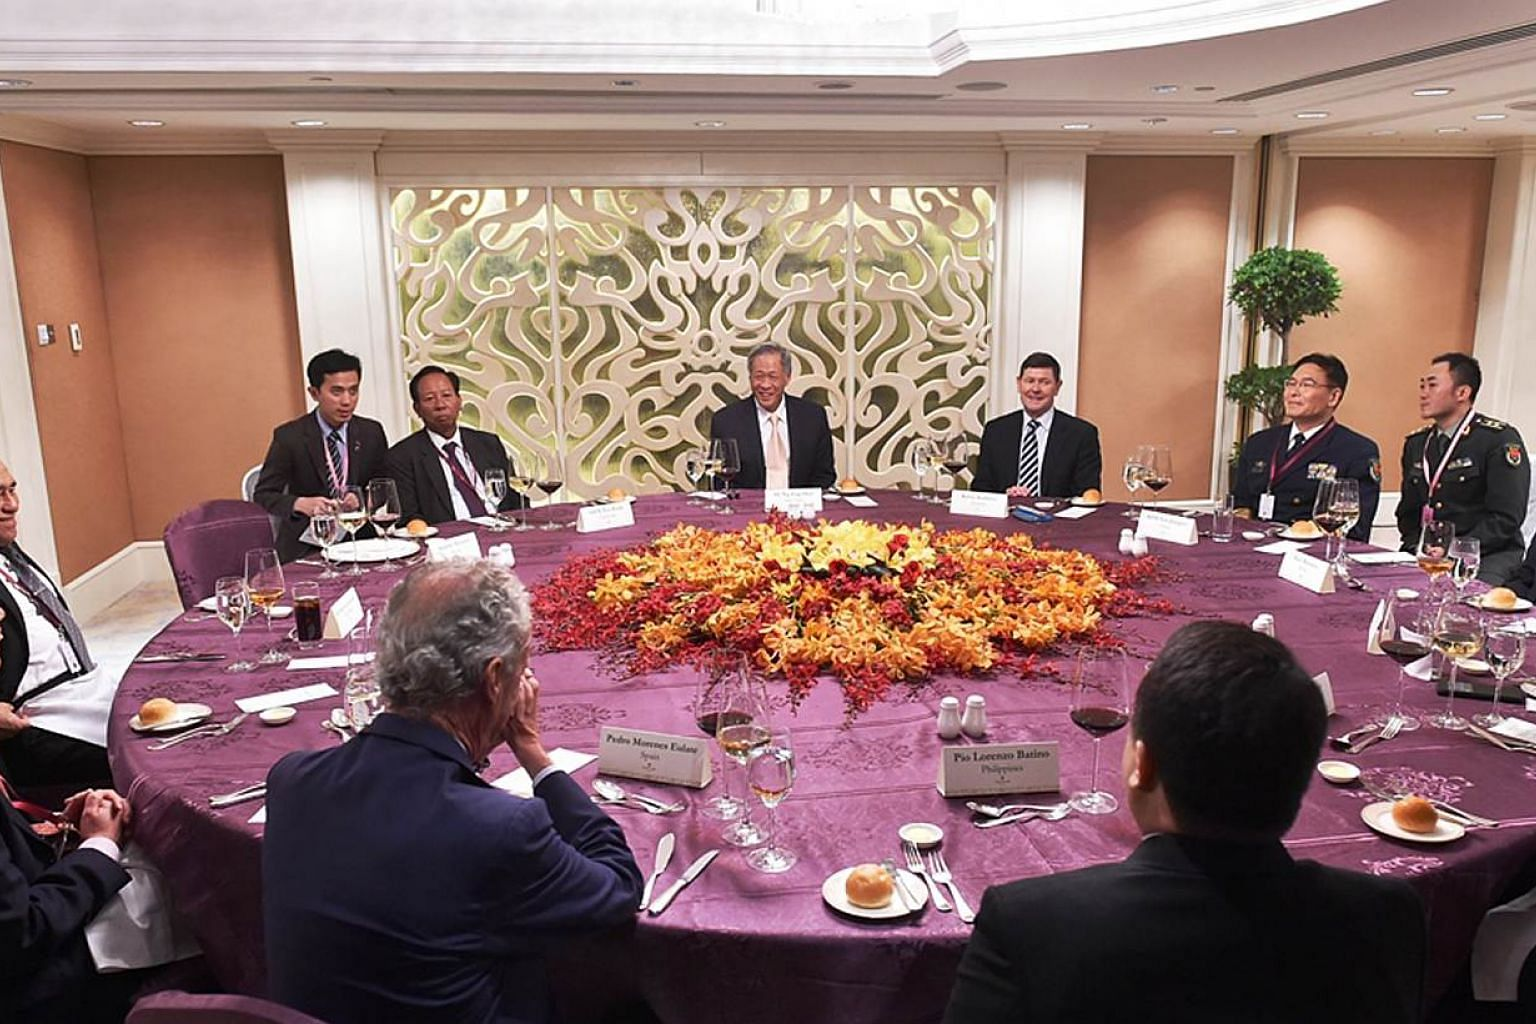 A ministerial luncheon, attended by 10 Ministers and representatives, in conjunction with the 14th Shangri-La Dialogue in Singapore on May 31, 2015. -- PHOTO: MINDEF